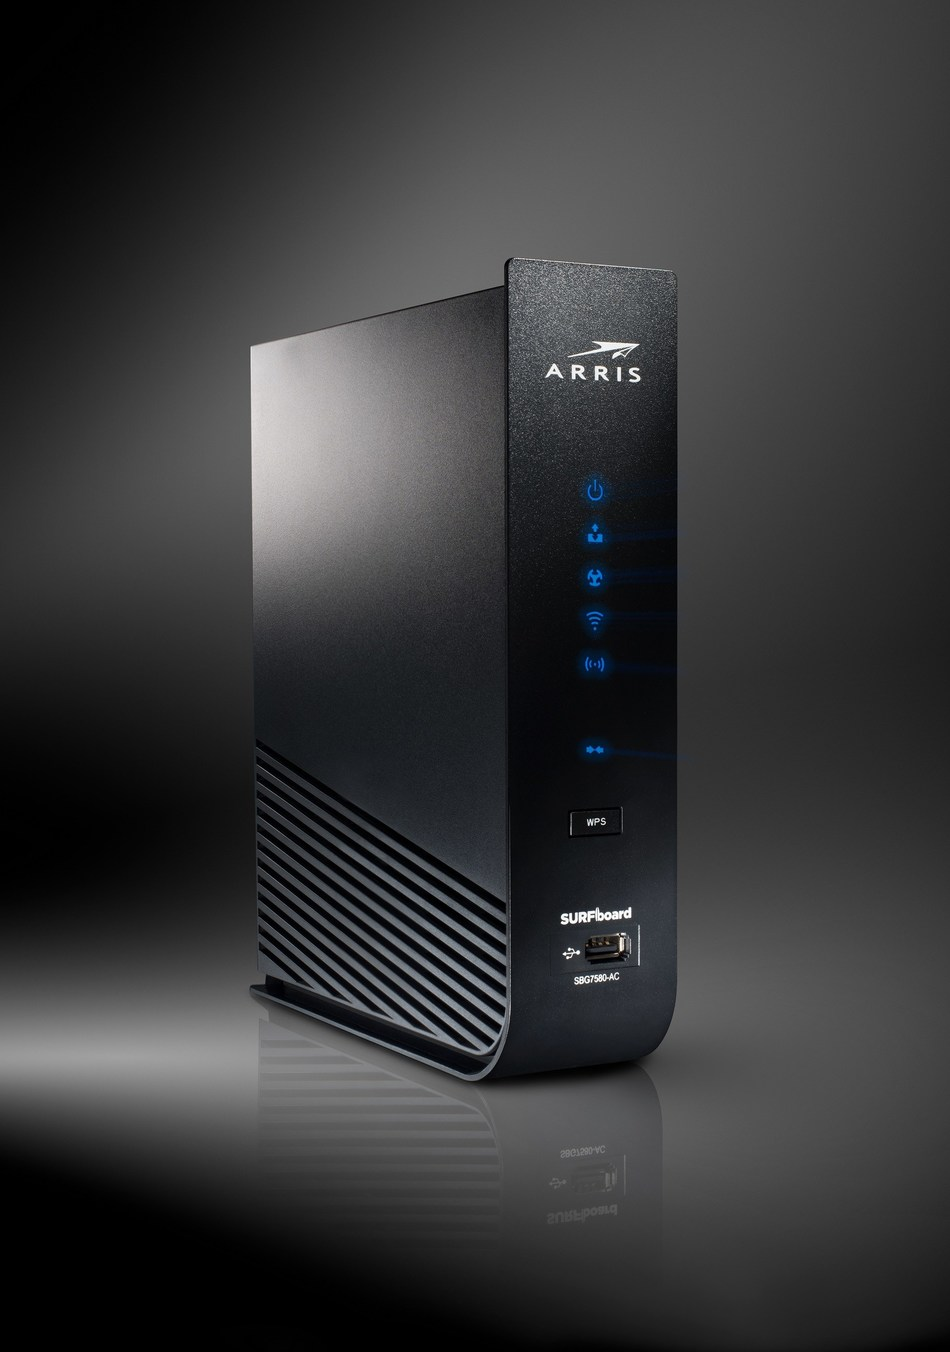 The ARRIS SURFboard SBG7580-AC will be the first device to embed the McAfee Secure Home Platform.